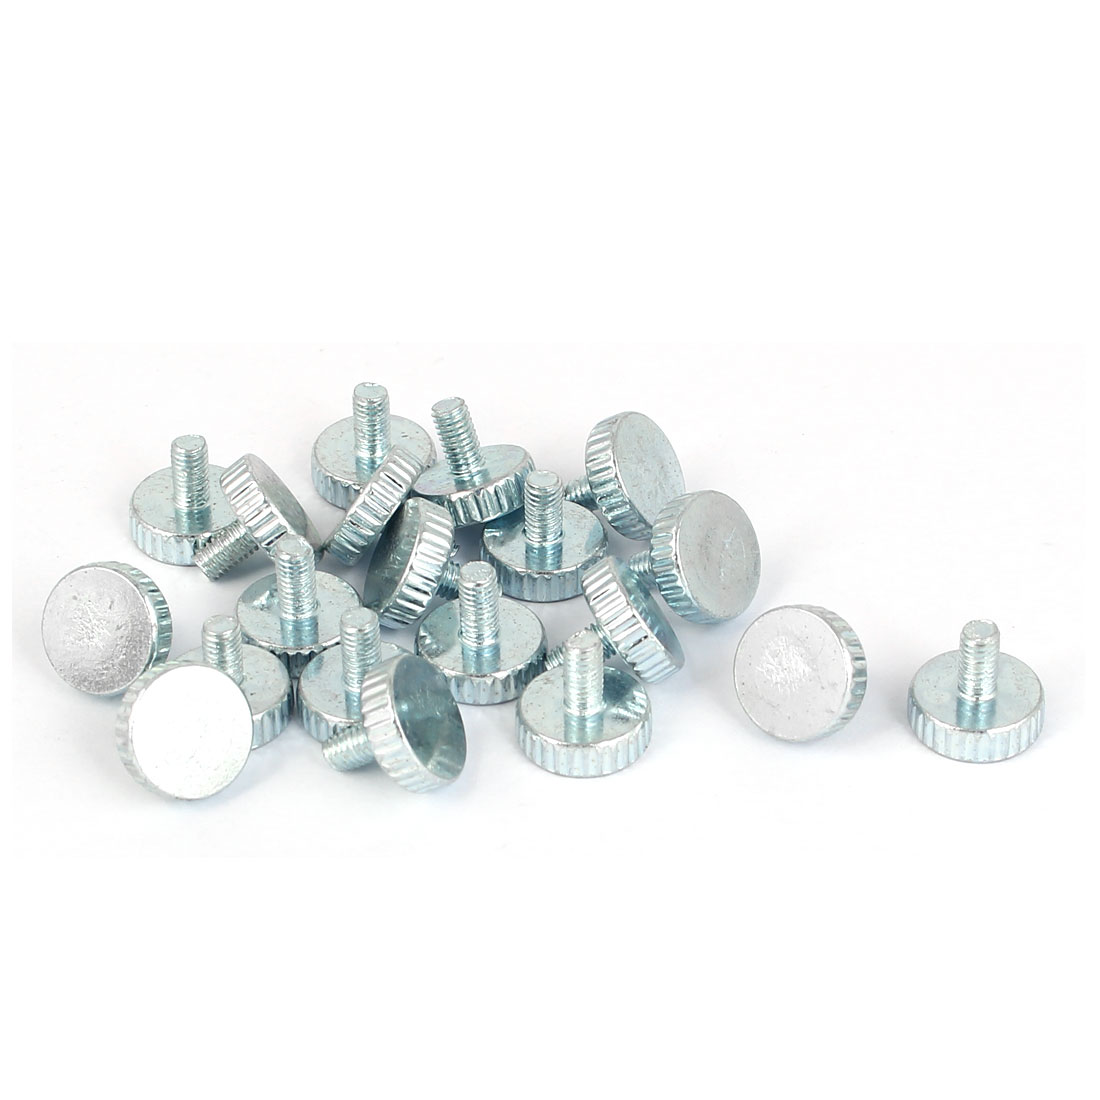 M3x6mm Thread Carbon Steel Knurled Round Head Thumb Screws Silver Blue 20pcs